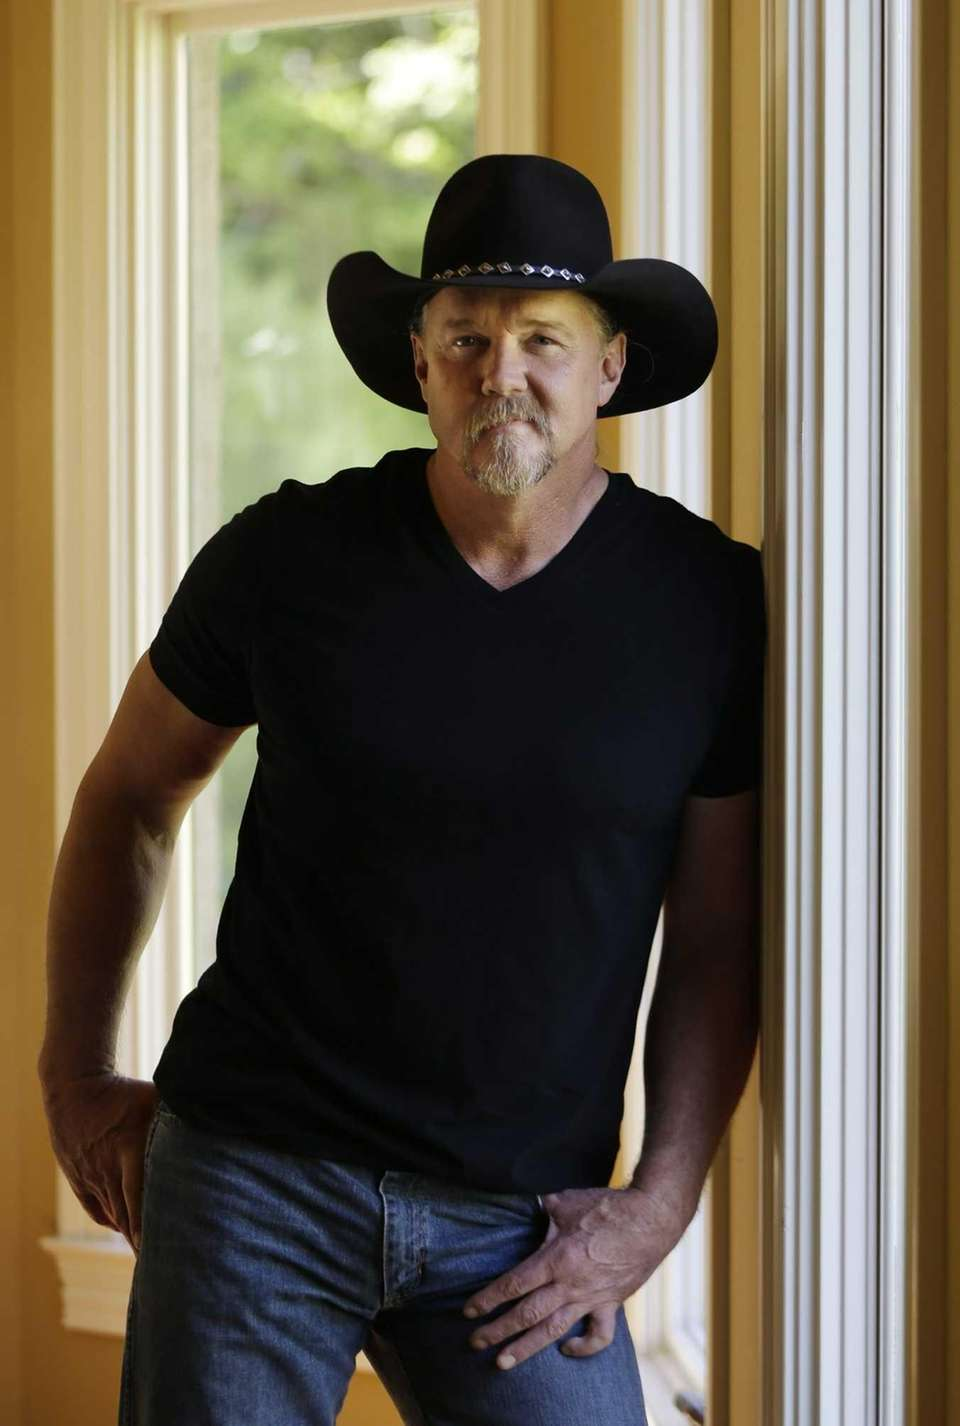 Country singer Trace Adkins will perform his Christmas